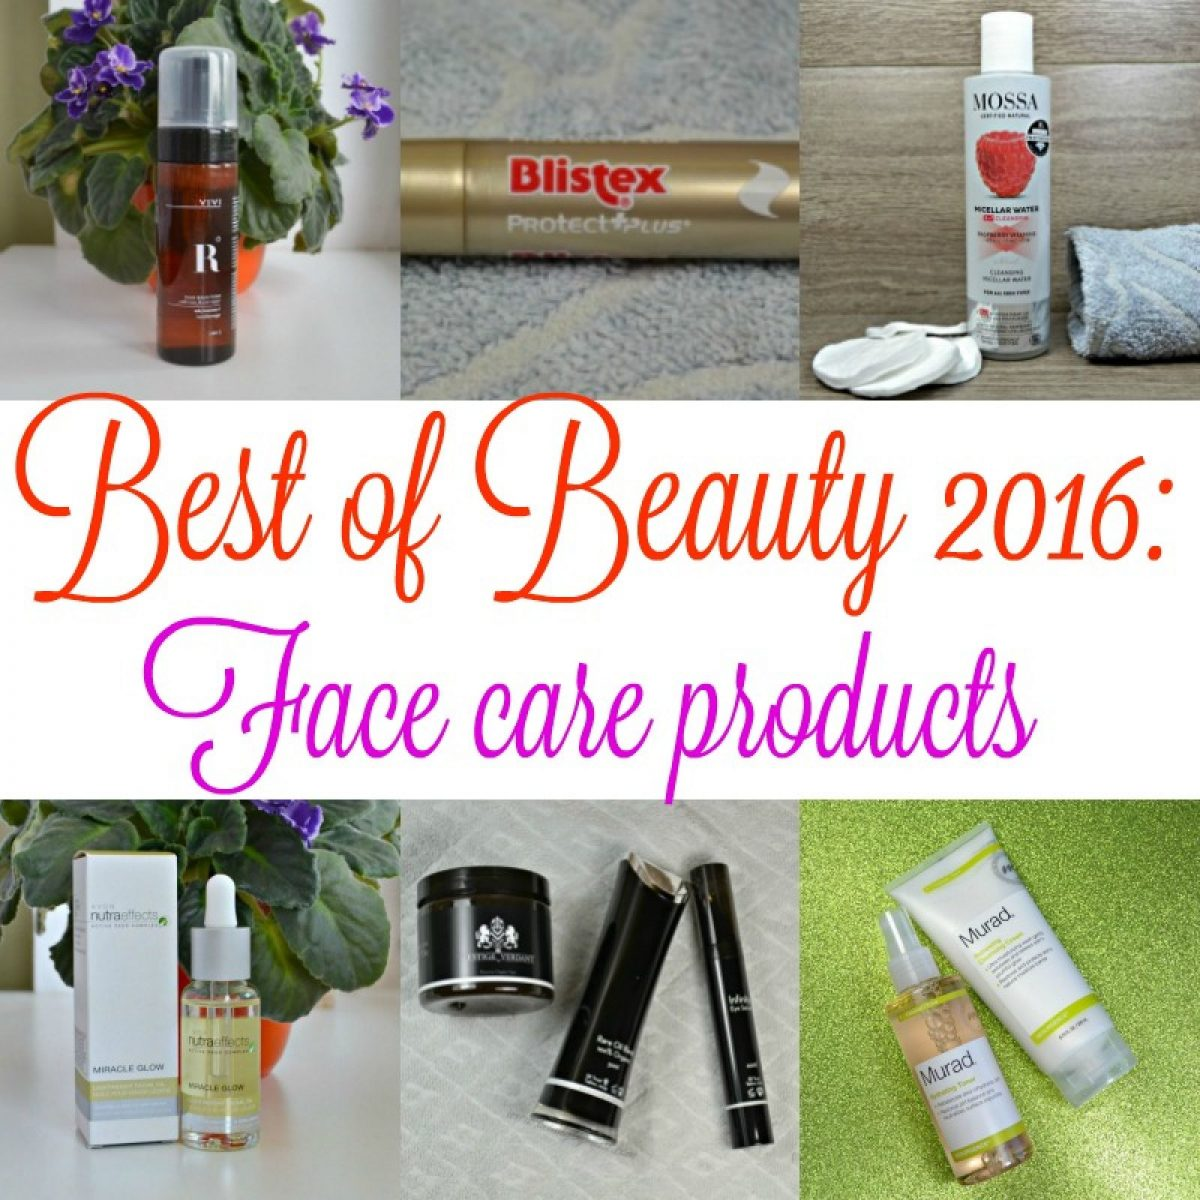 Best of Beauty 2016: Face care products